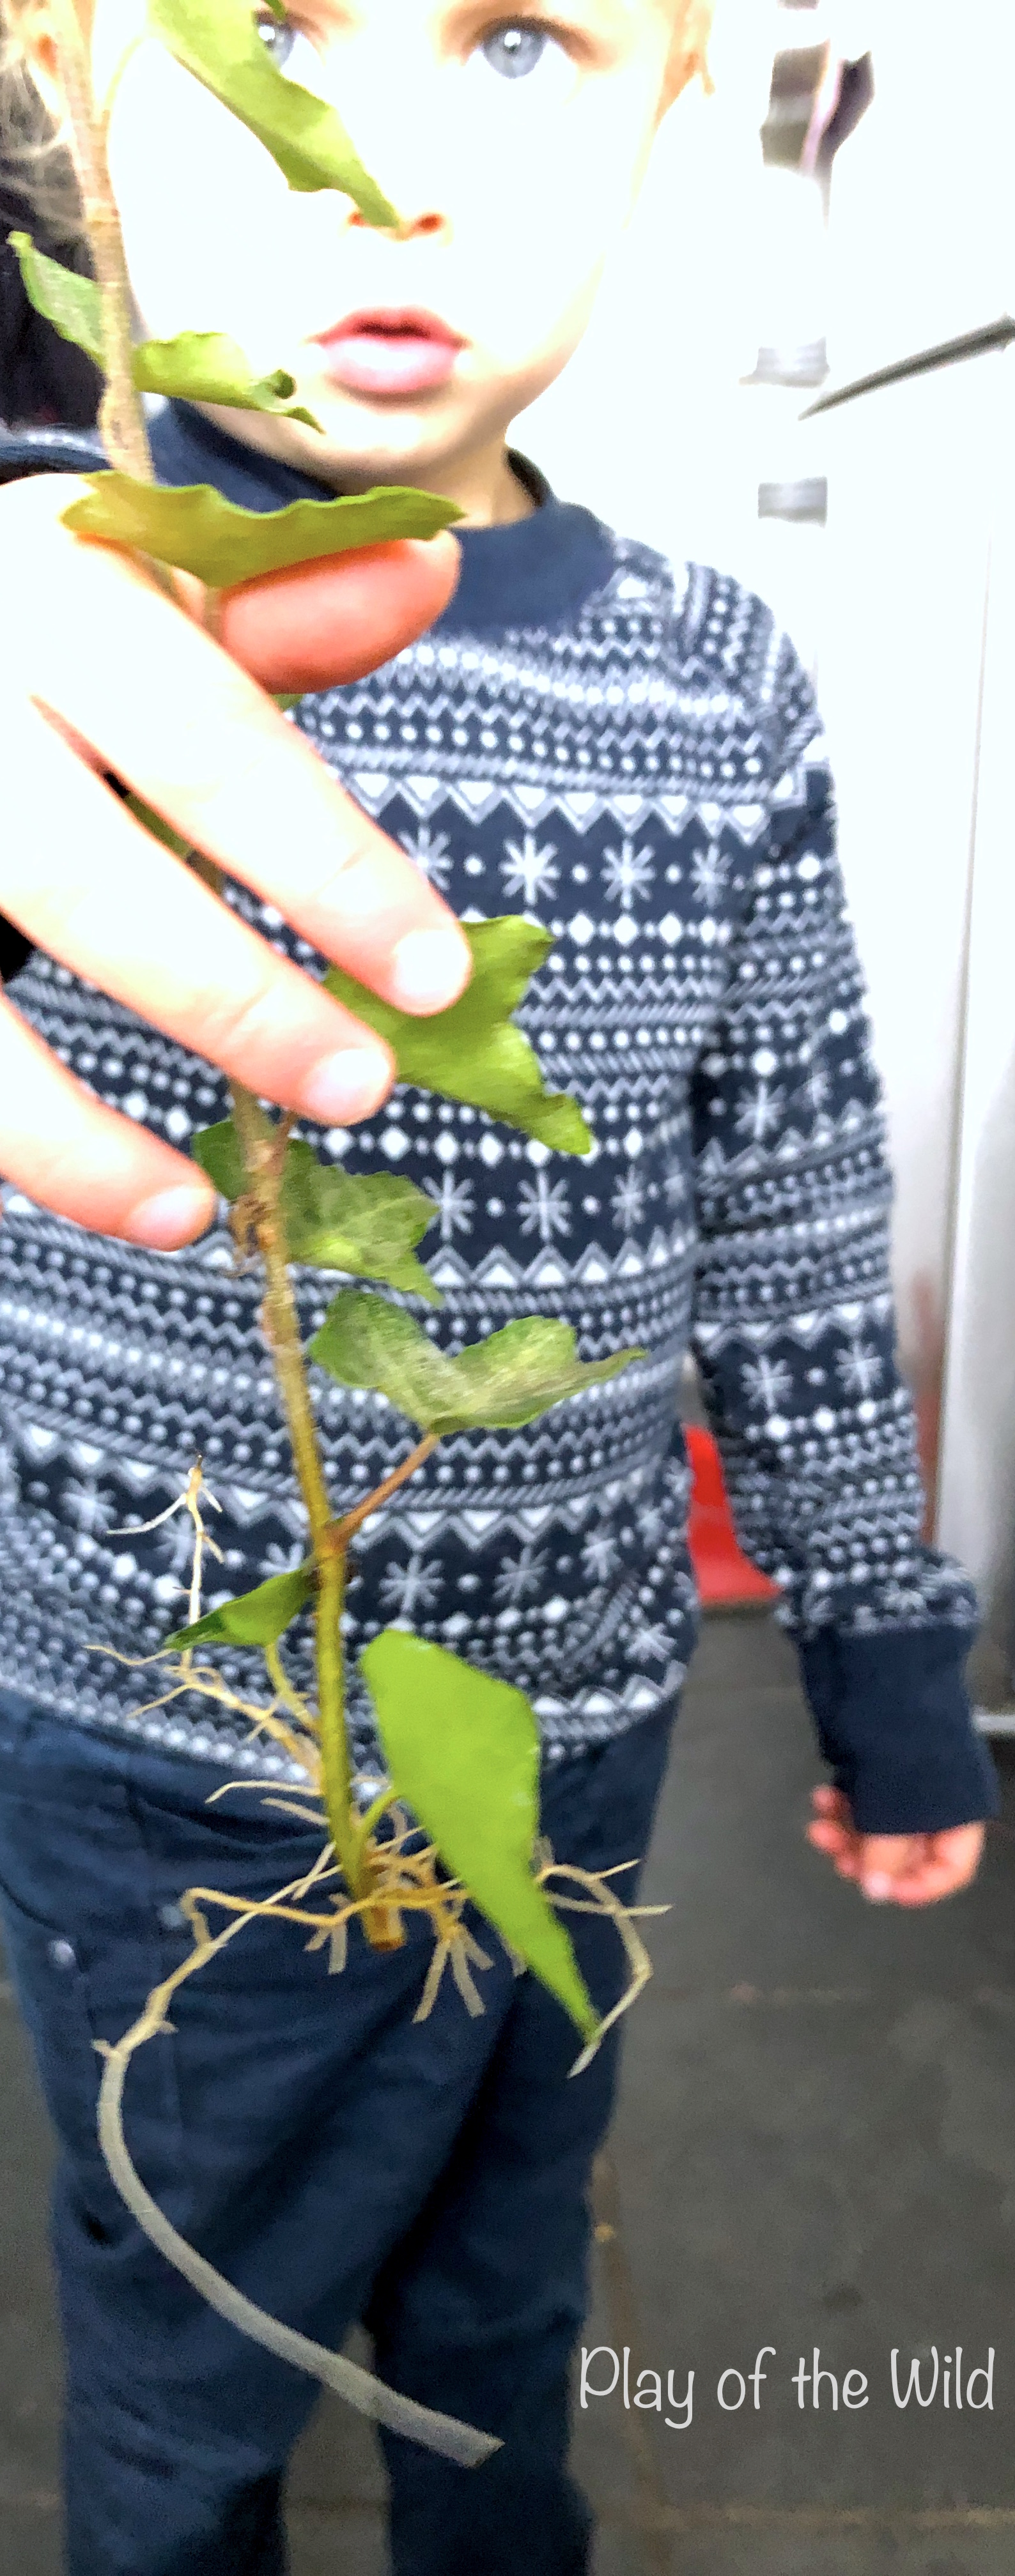 Rooting ivy plants with children. Propagating Plants in Water.